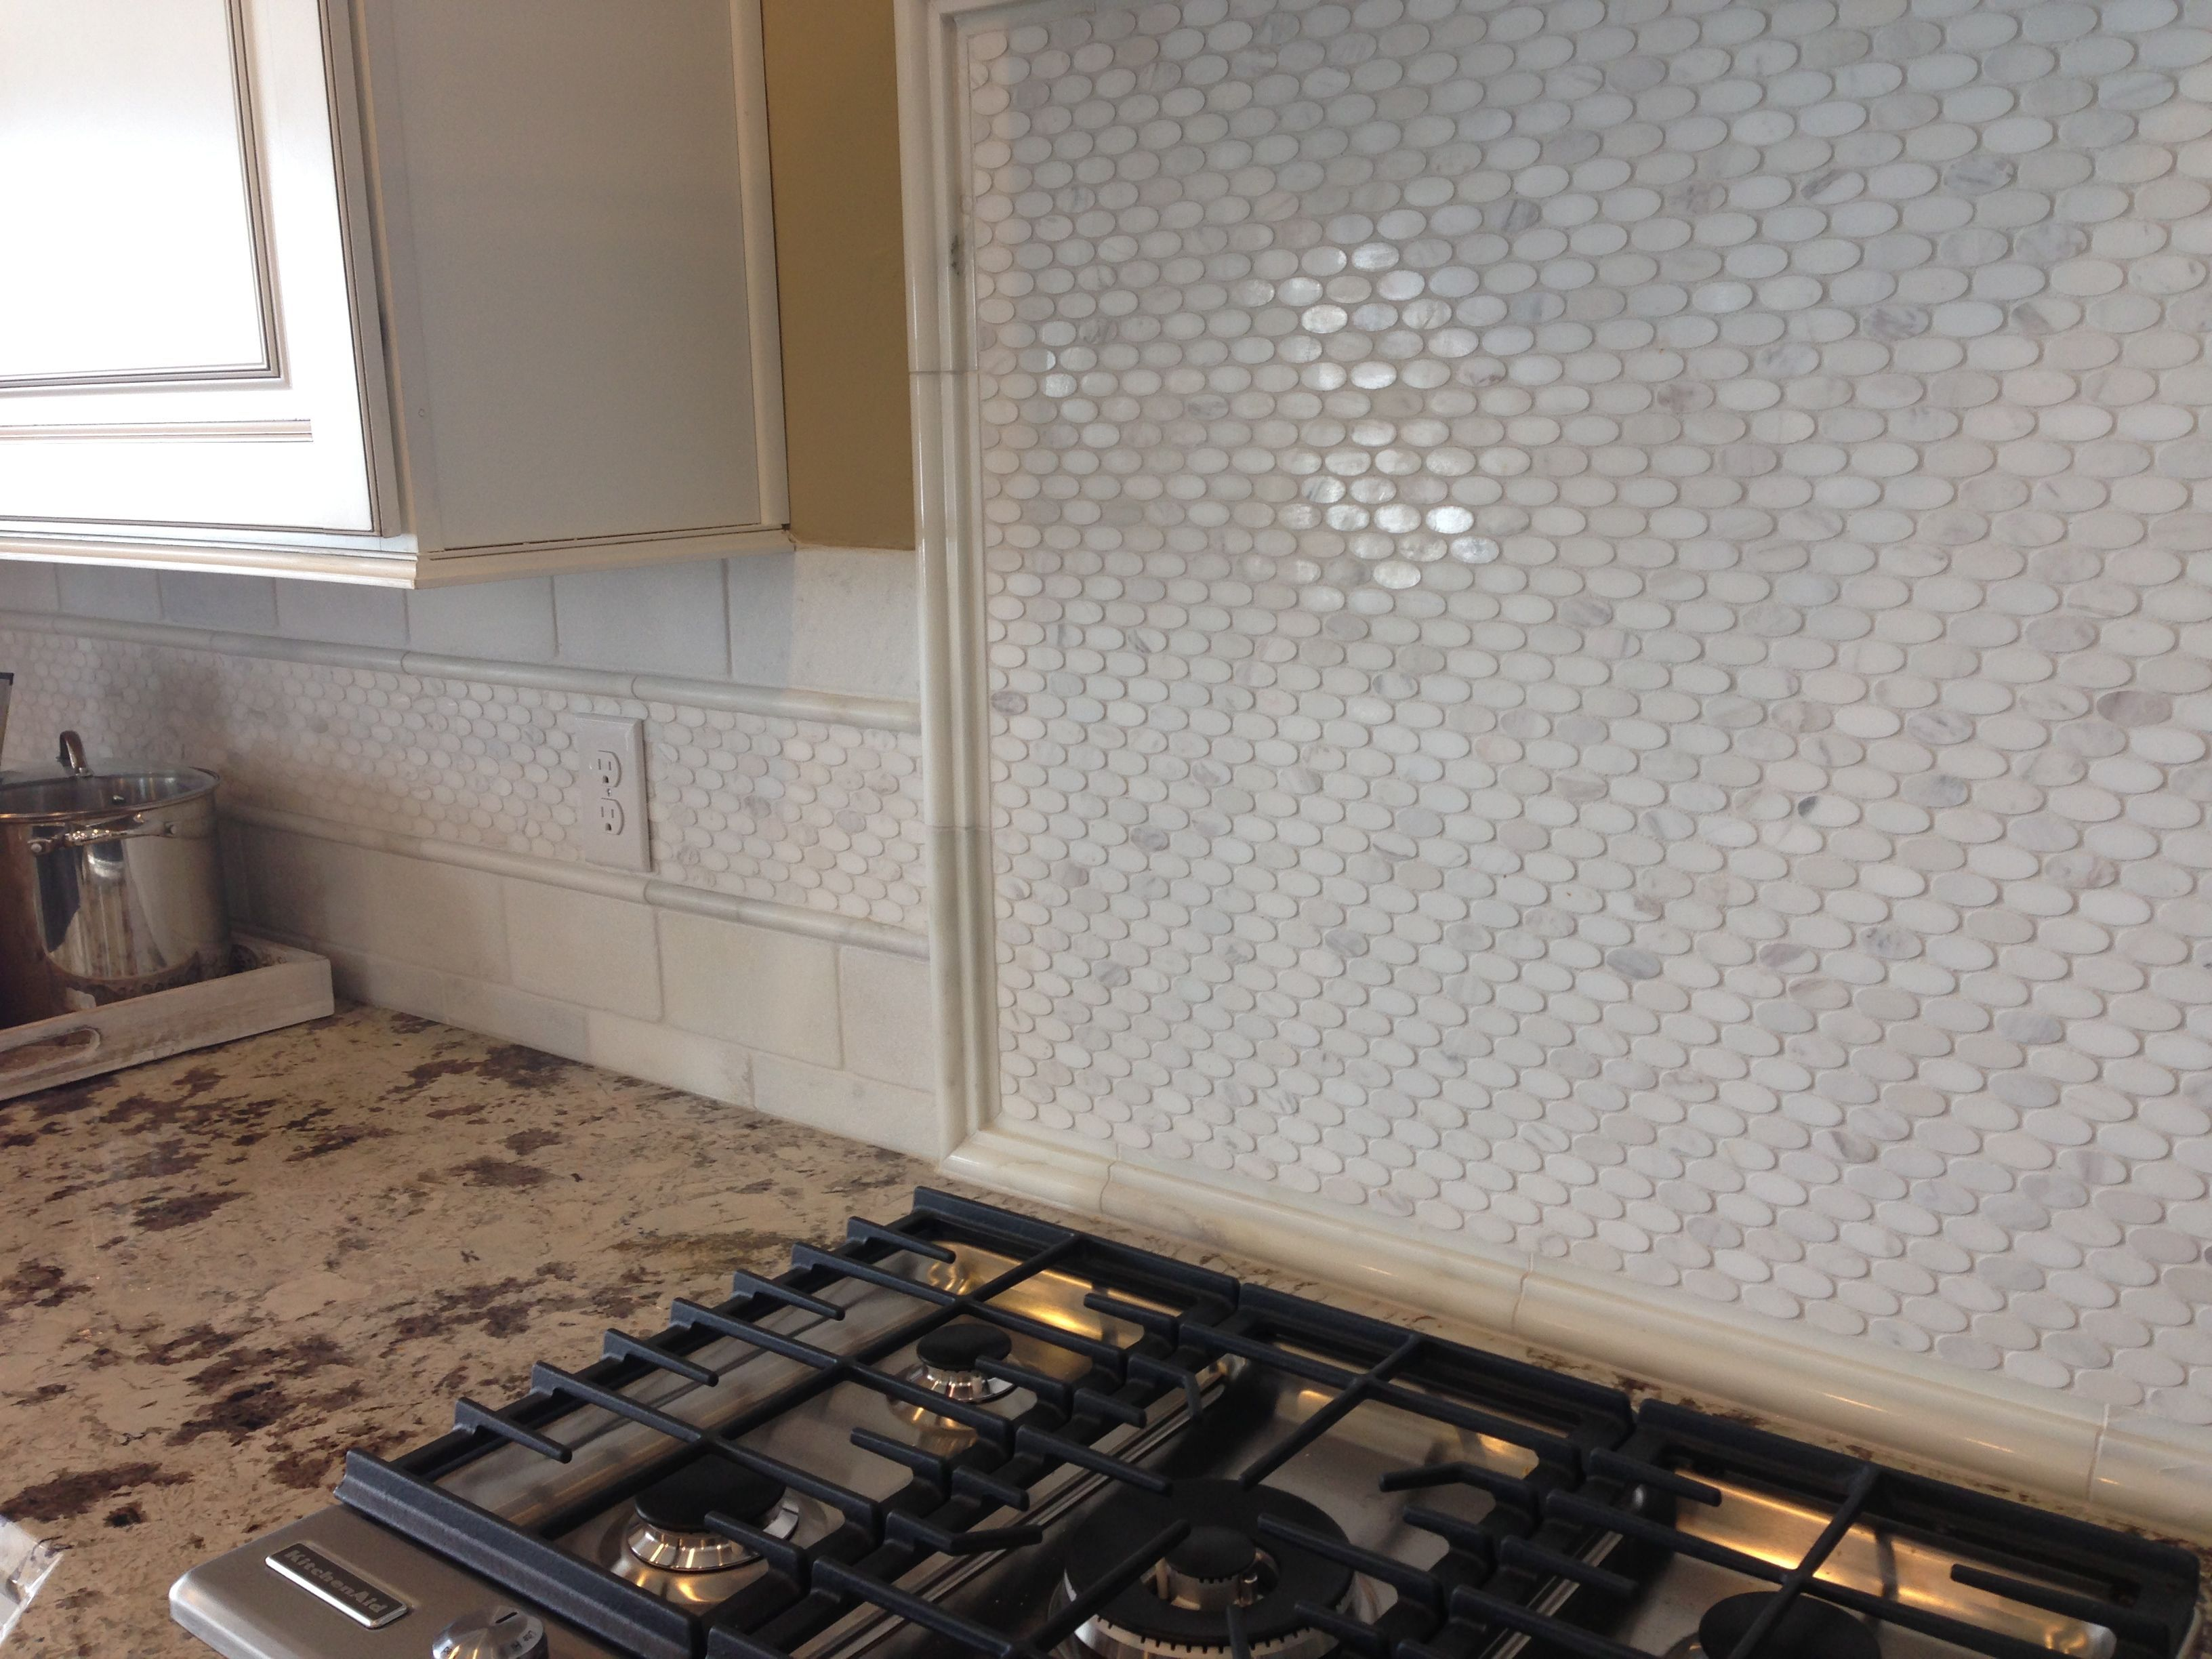 Backsplash Tile Patterns For Easy Cleaning Countertops Idea Modern